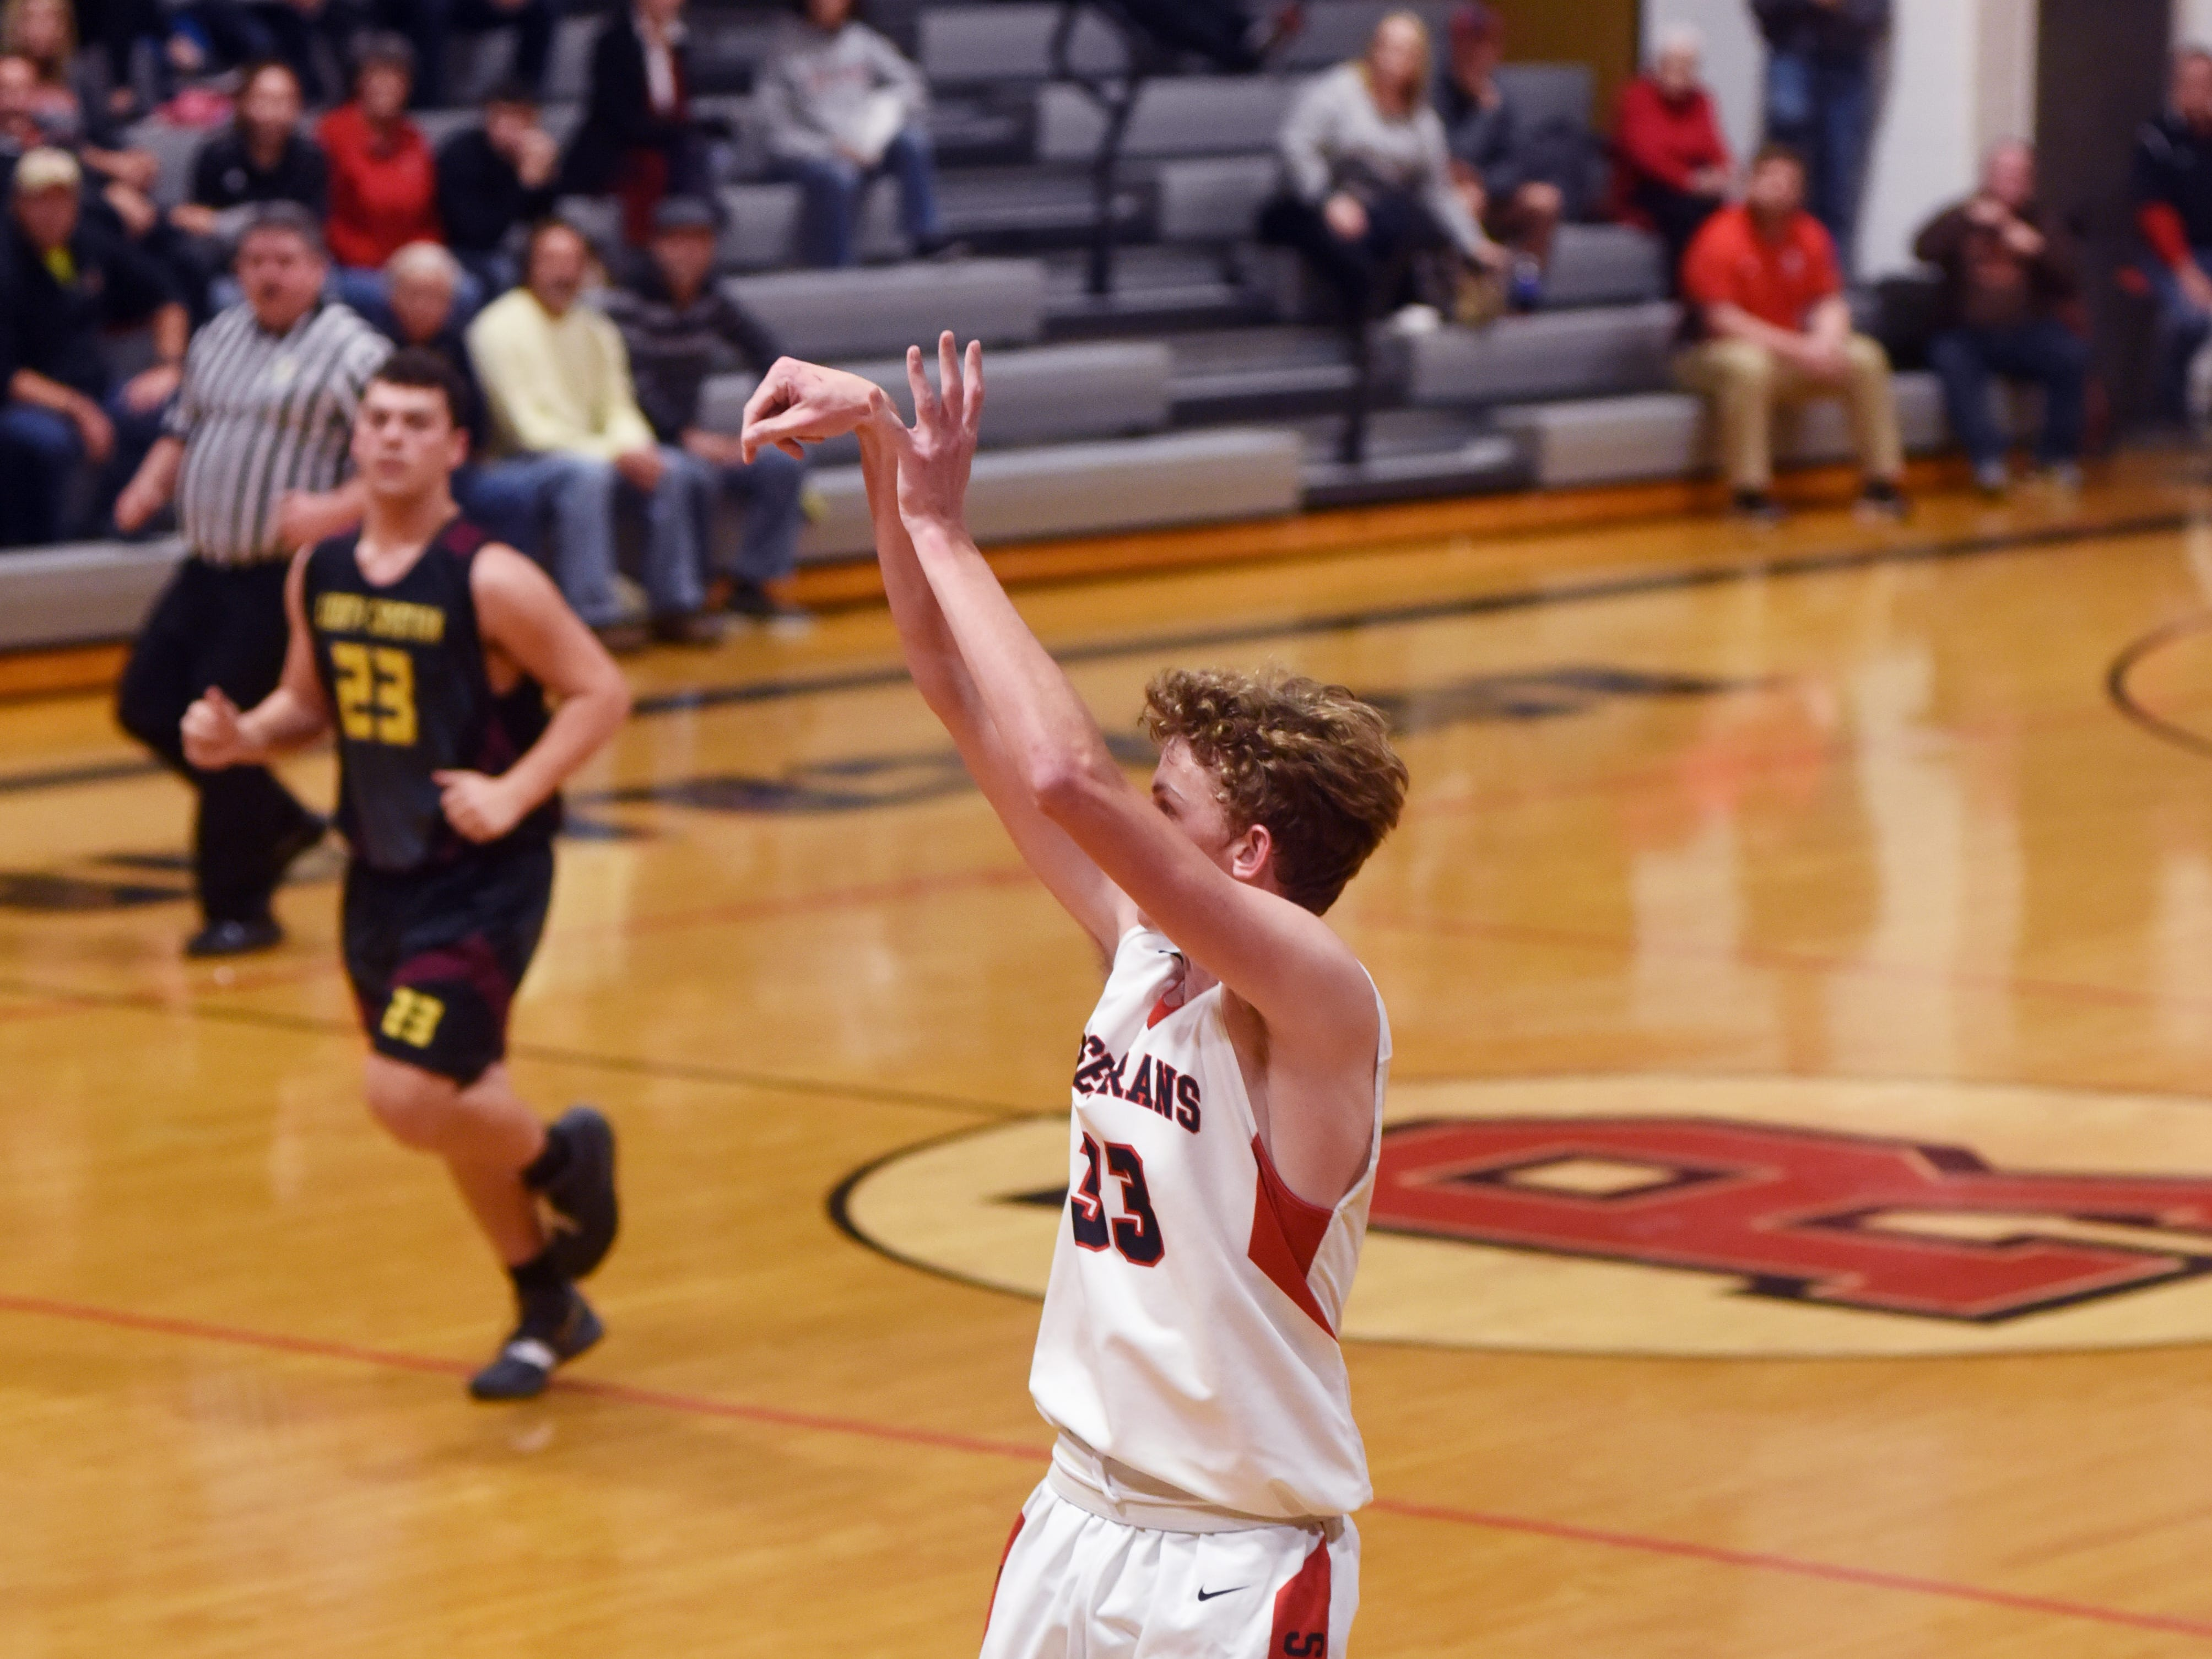 Kaid Brown hits a 3 during the first half of Rosecrans' 92-12 win against Liberty Christian on Monday night at Rogge Gymnasium.